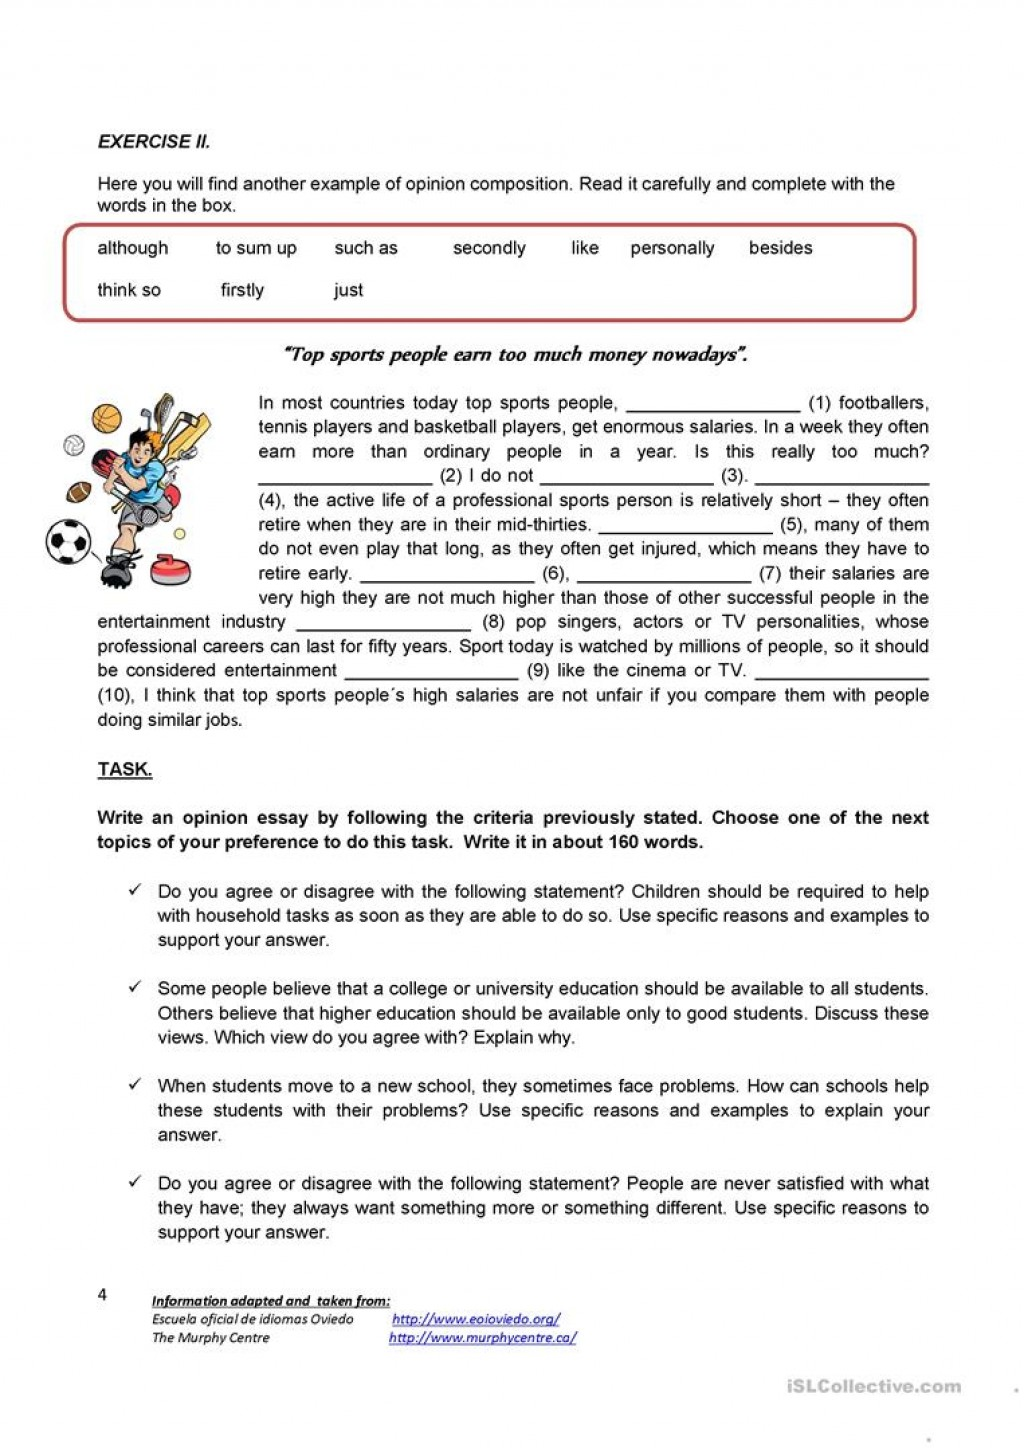 004 Essay Example Writing An Opinion Creative Tasks 80444 4 How To Unbelievable Write Conclusion On A Book Video Large